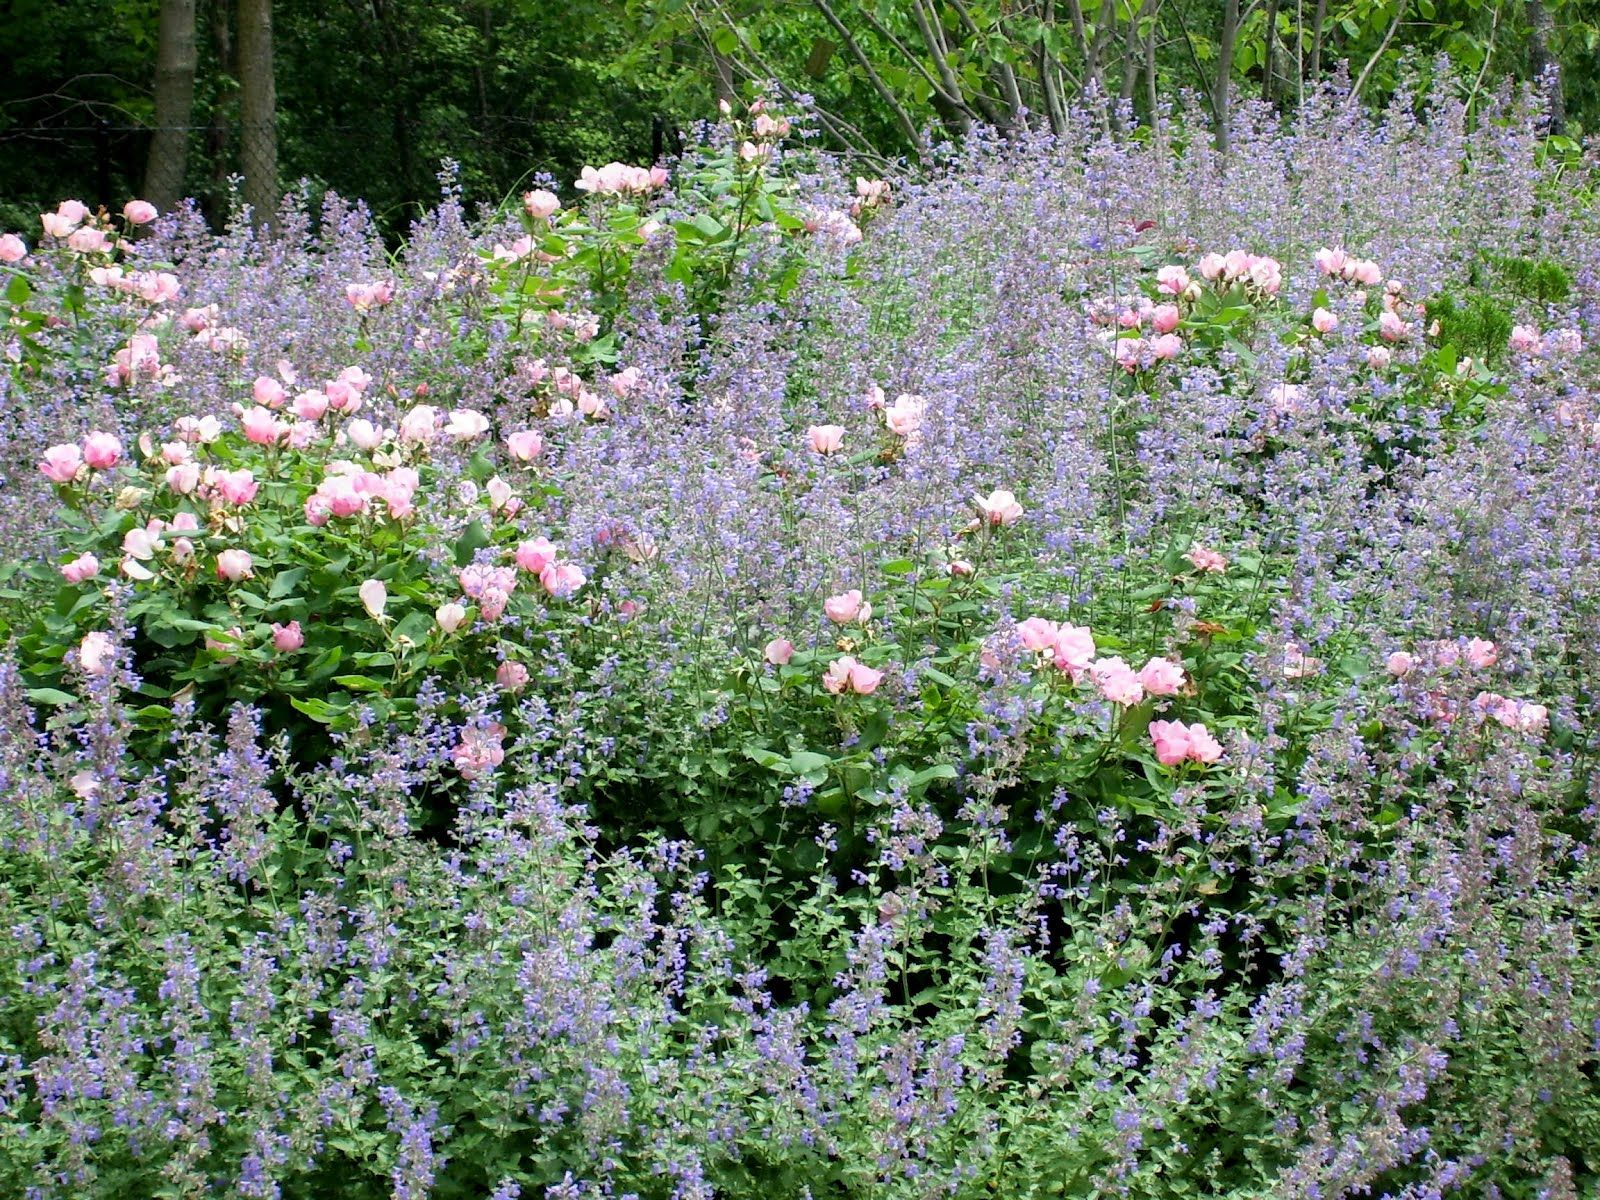 8d6bb1ff324ae6b051bf76eb8574e201 - Pictures Of Rose Gardens With Companion Plants